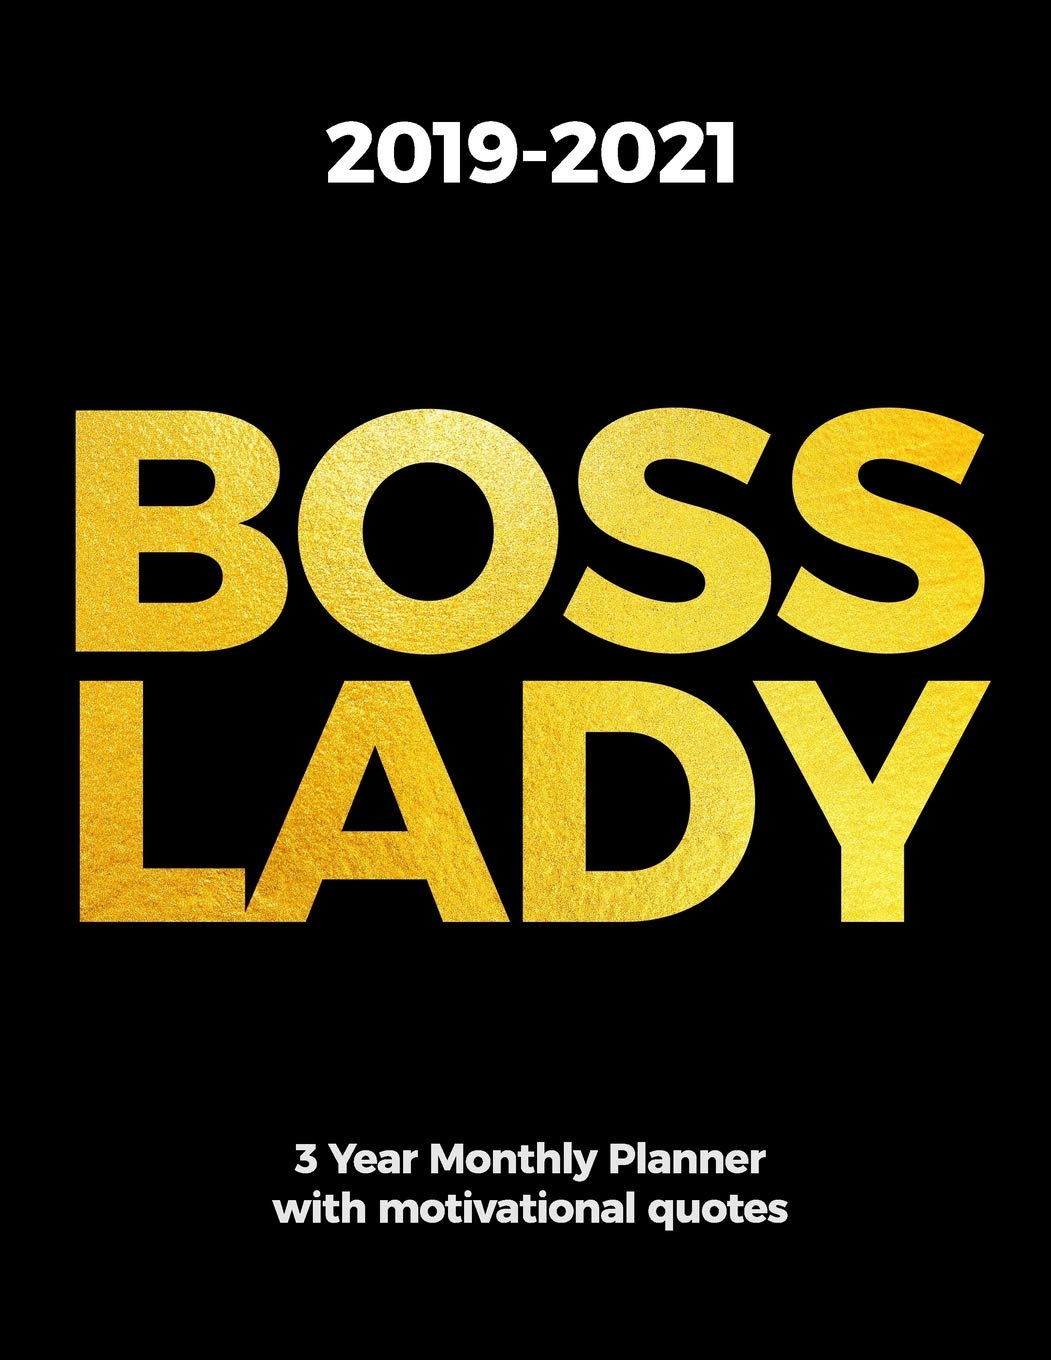 2019 2021 Boss Lady 3 Year Monthly Planner With Motivational Quotes